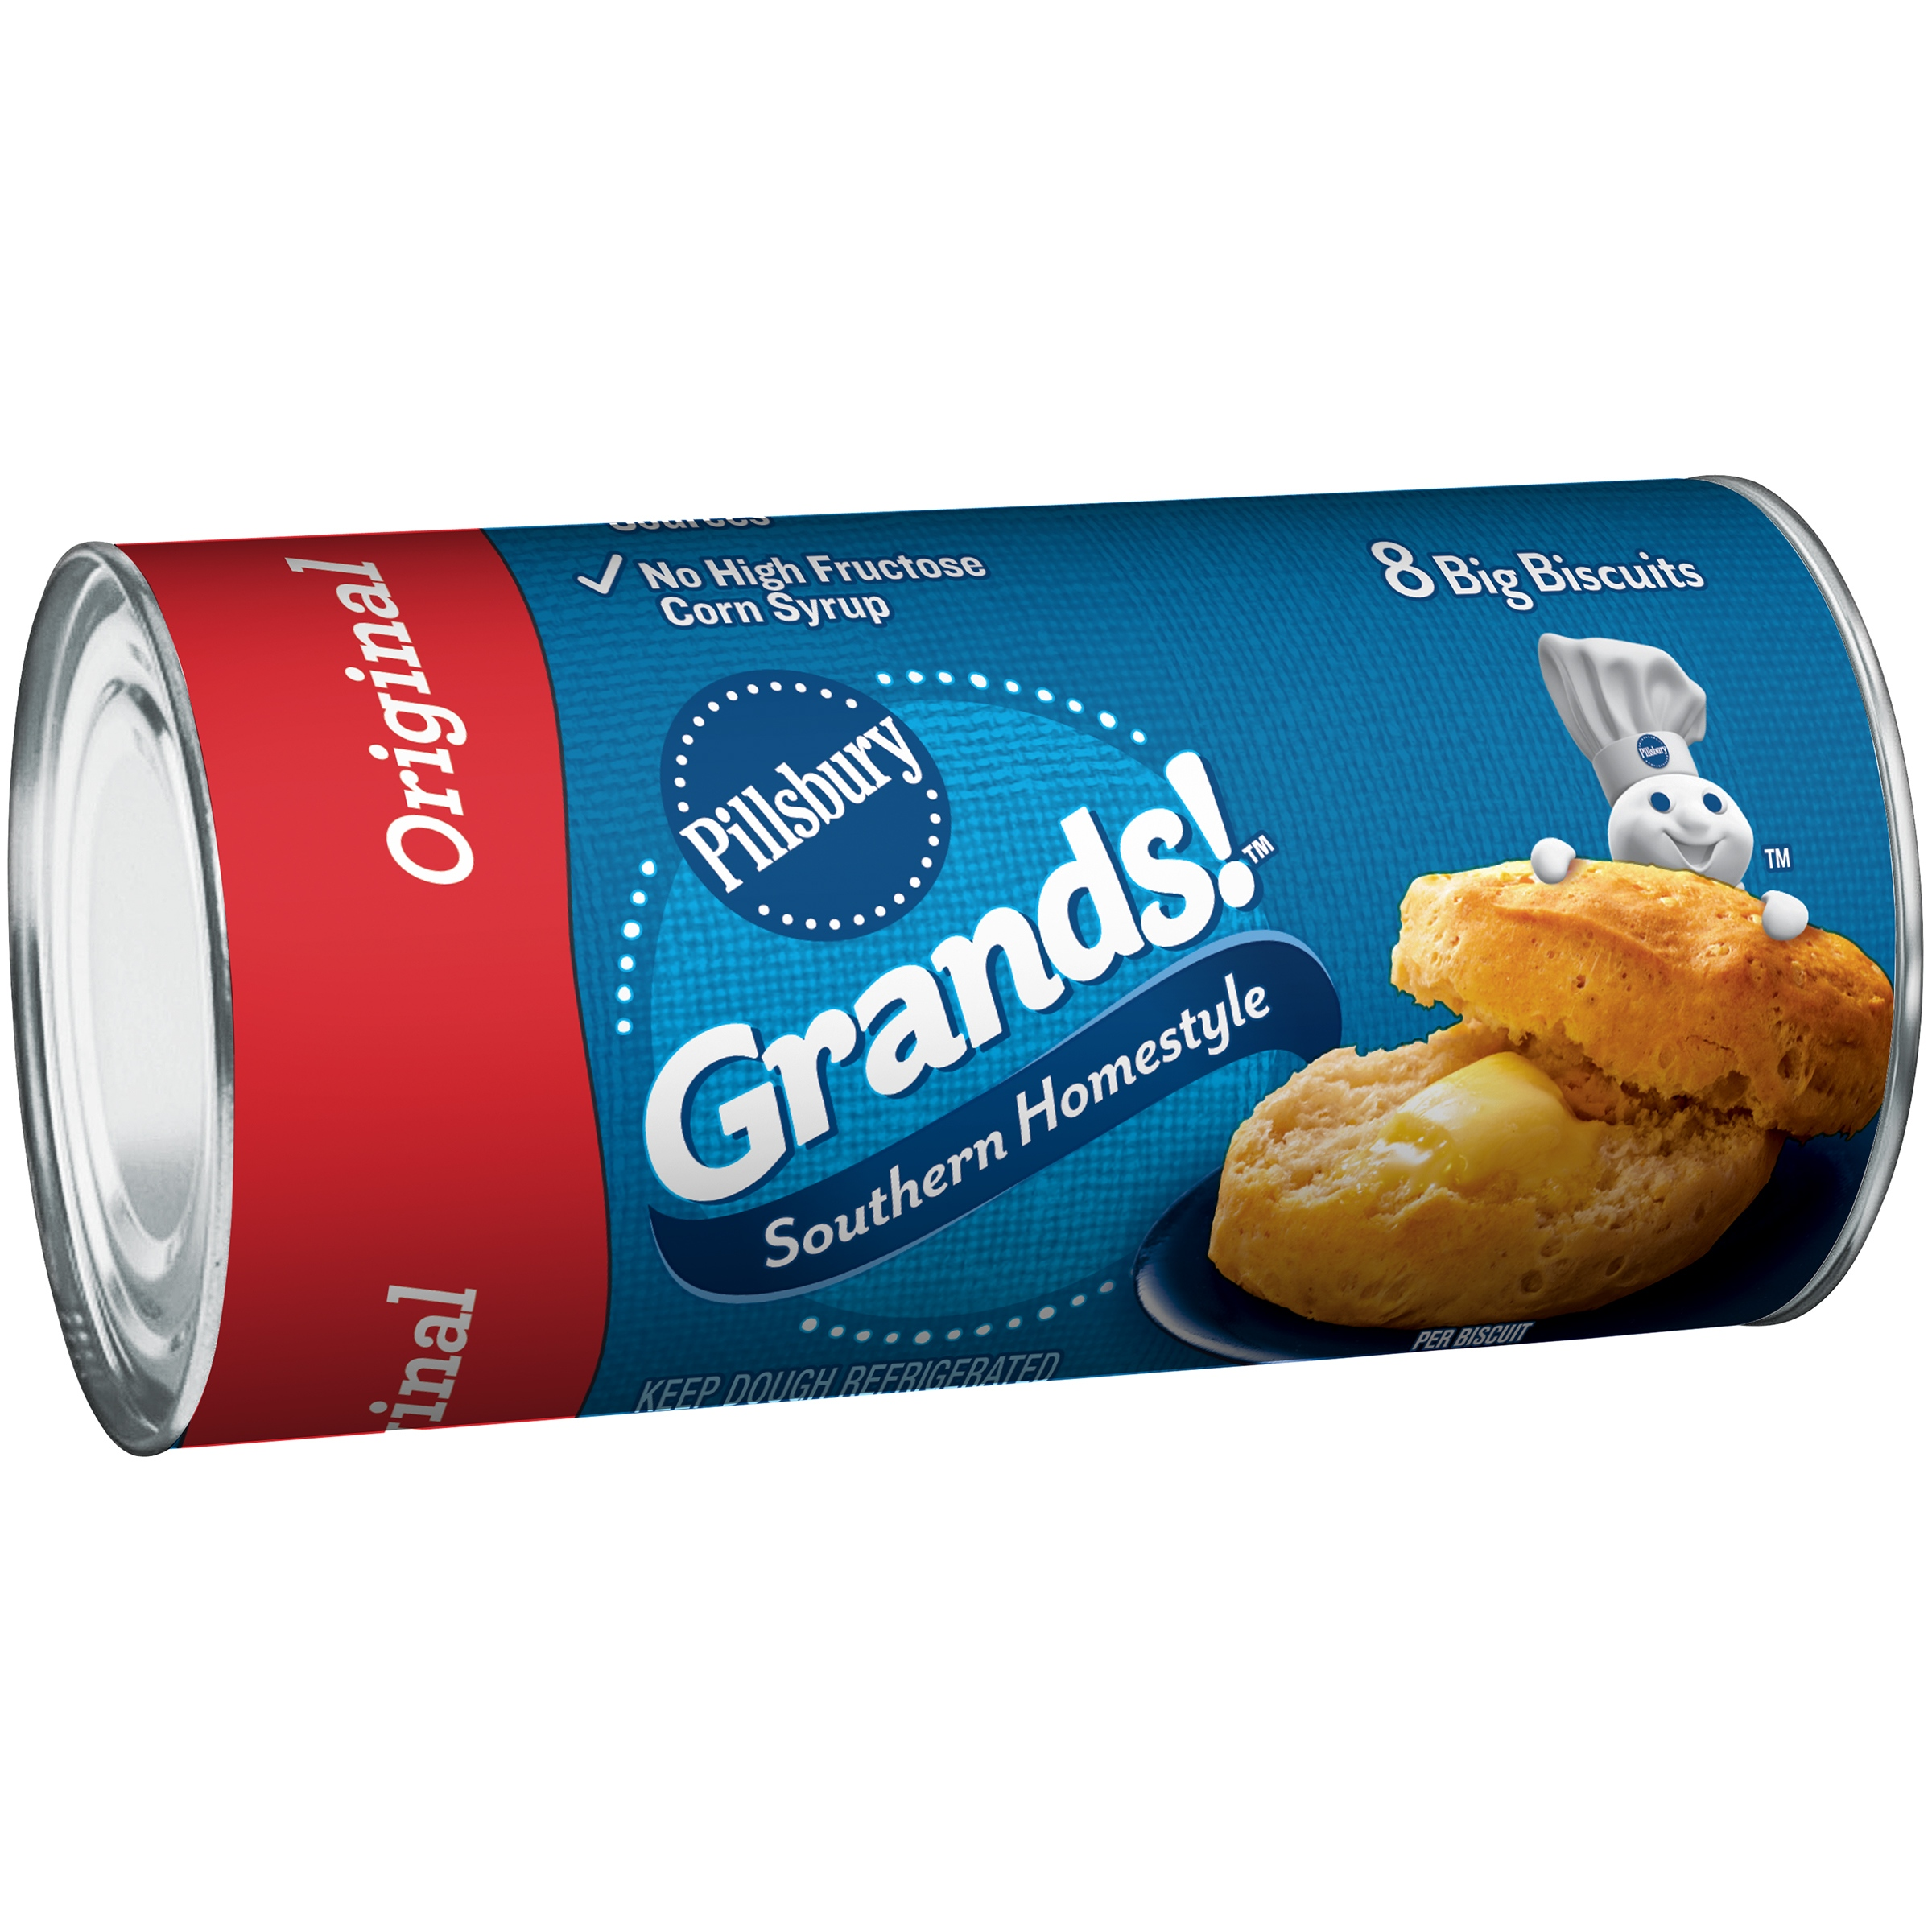 Pillsbury Grands!™ Refrigerated Biscuits Southern Homestyle Original 8 ct 16.3 oz Can